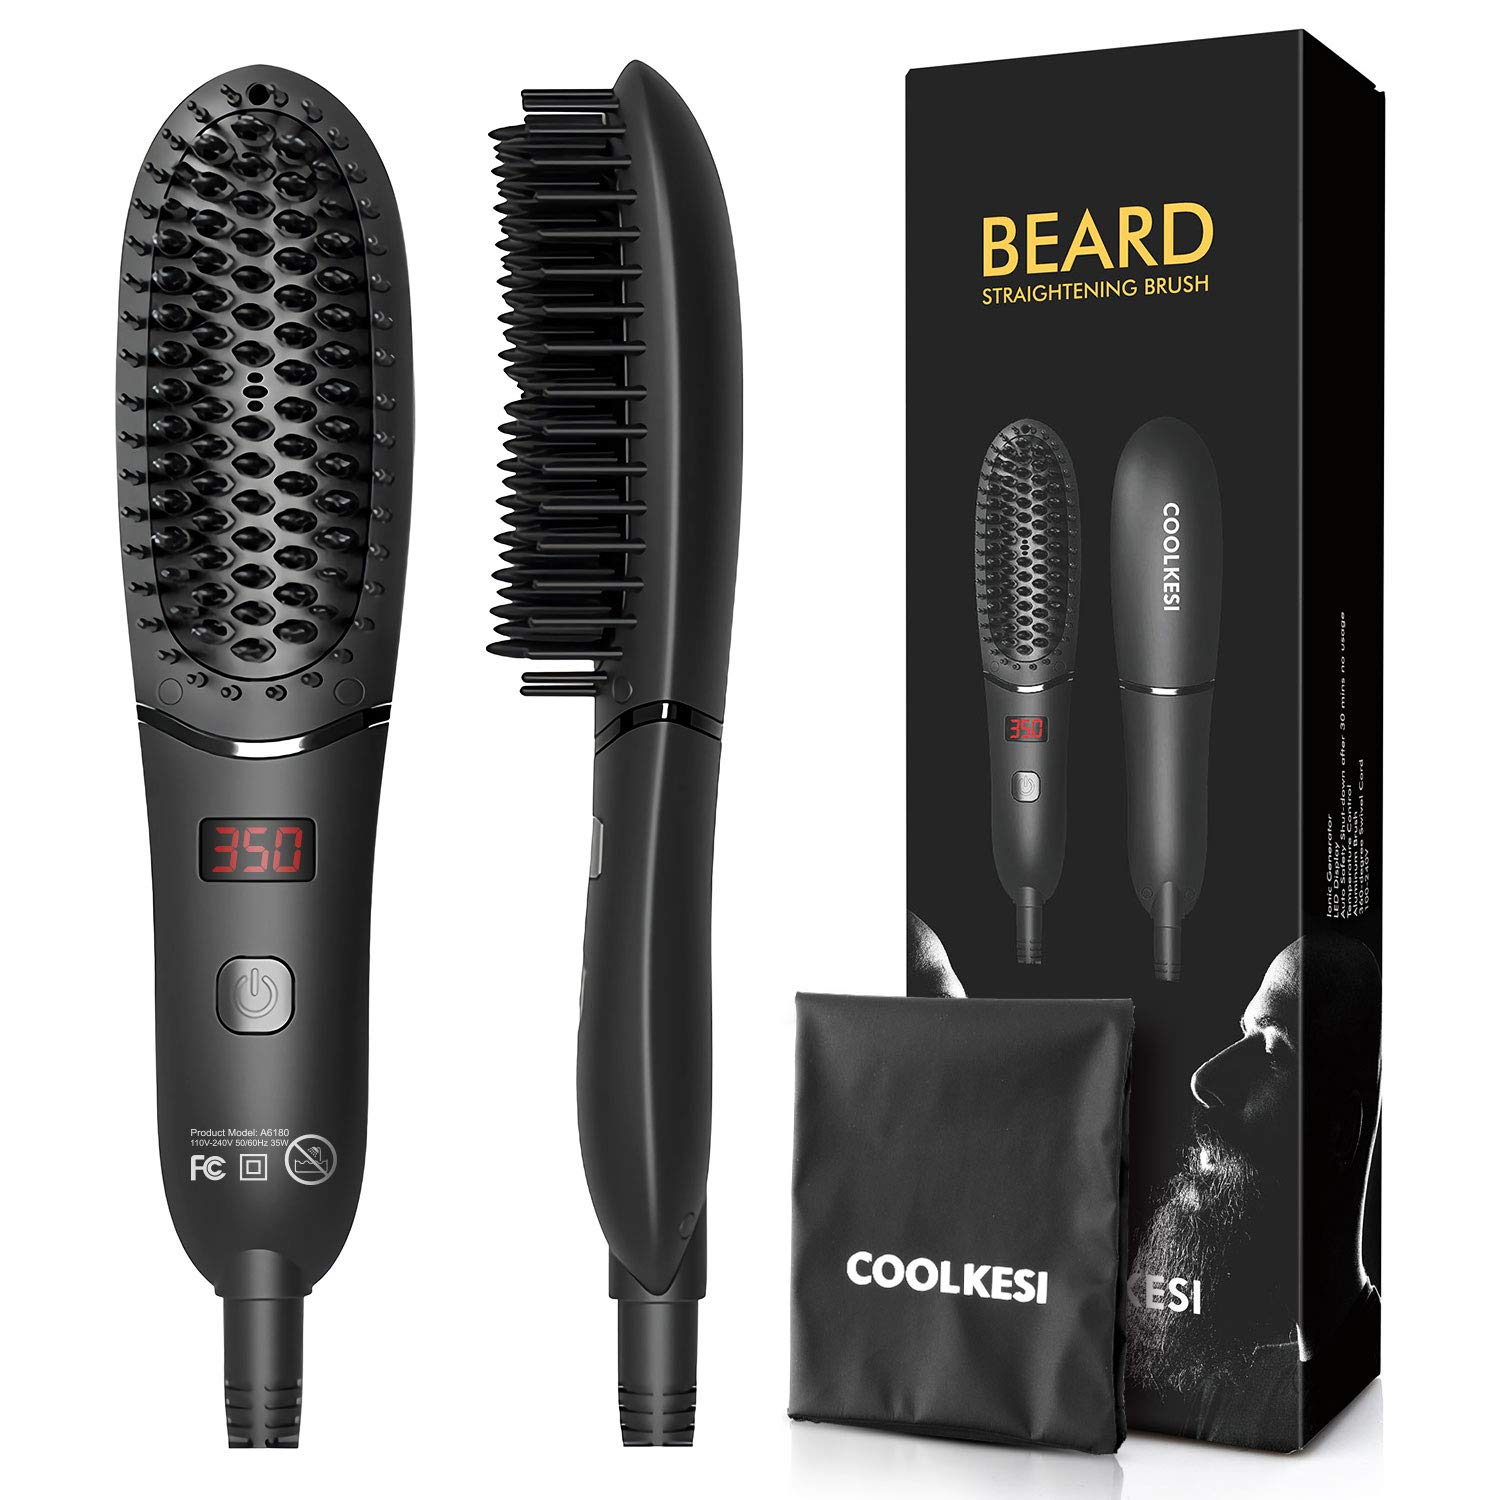 COOLKESI Ionic Beard Straightener for Men, Anti-Scald Hair Straightening Brush with Fast Heating, Portable Ceramic Heat Brush Comb for Home or Travel, Electric Dual Voltage& LED Adjustable Temp by COOLKESI